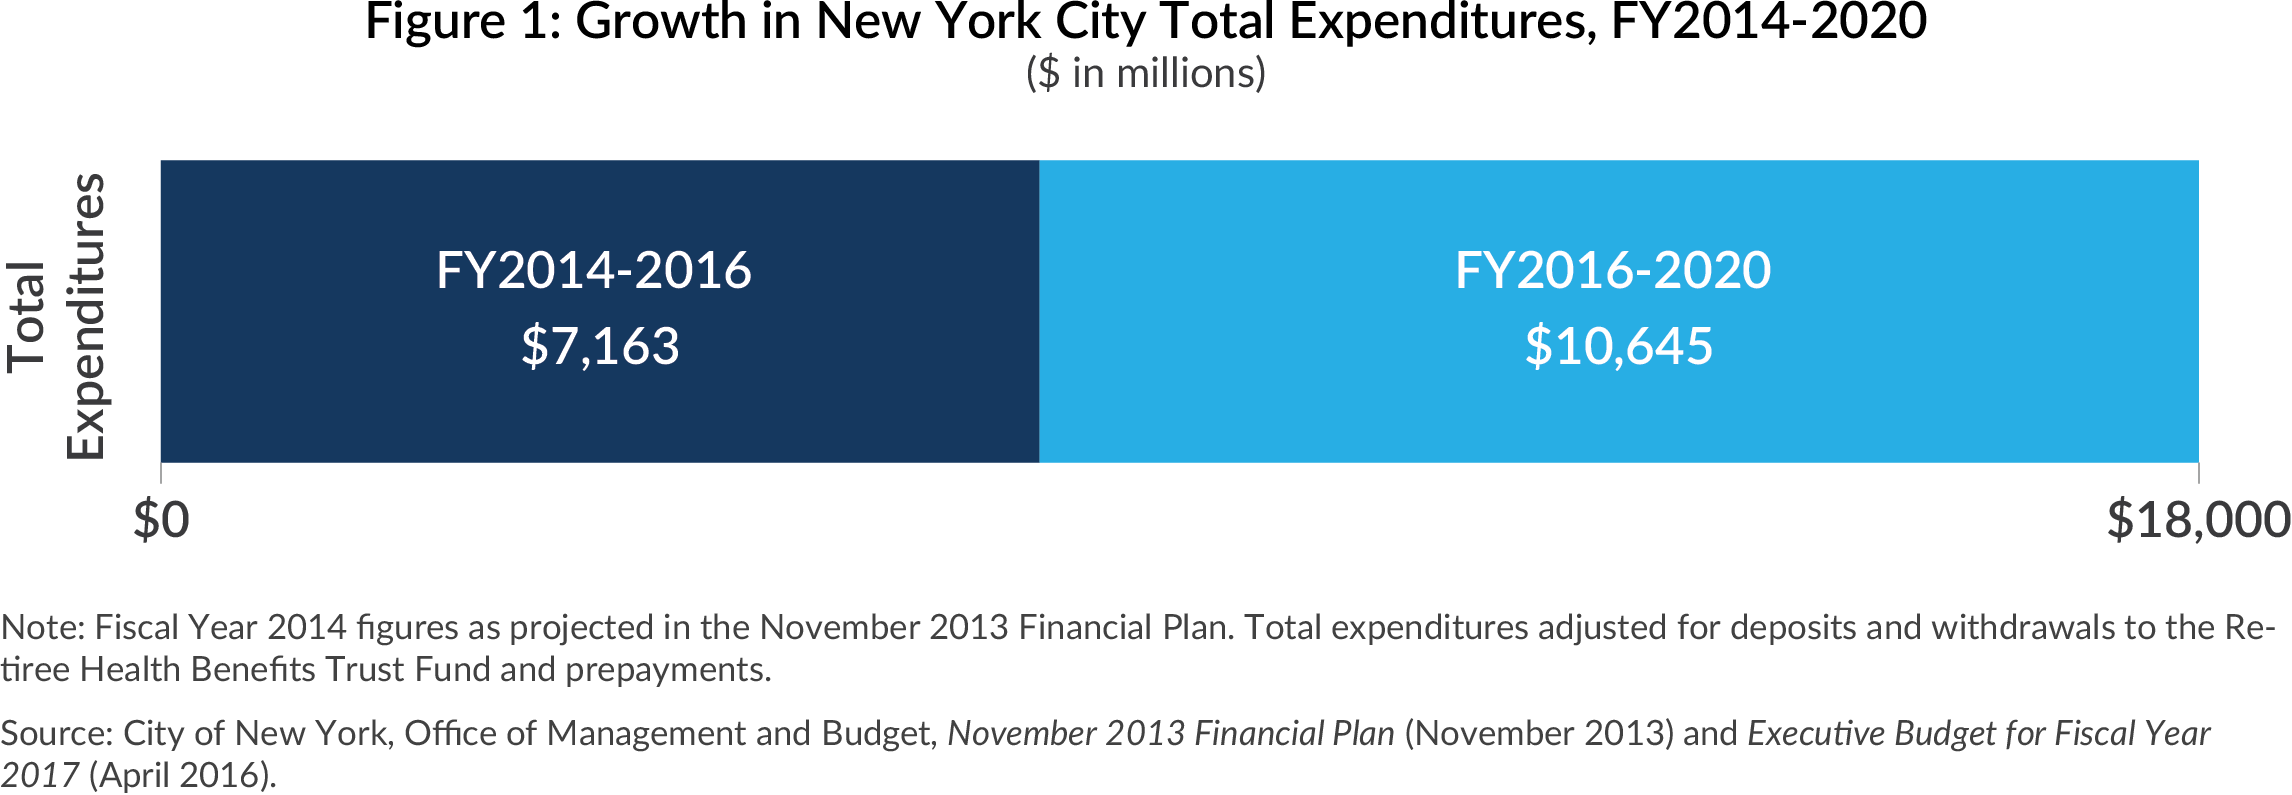 Growth in NYC expenditures, fy2014-2020